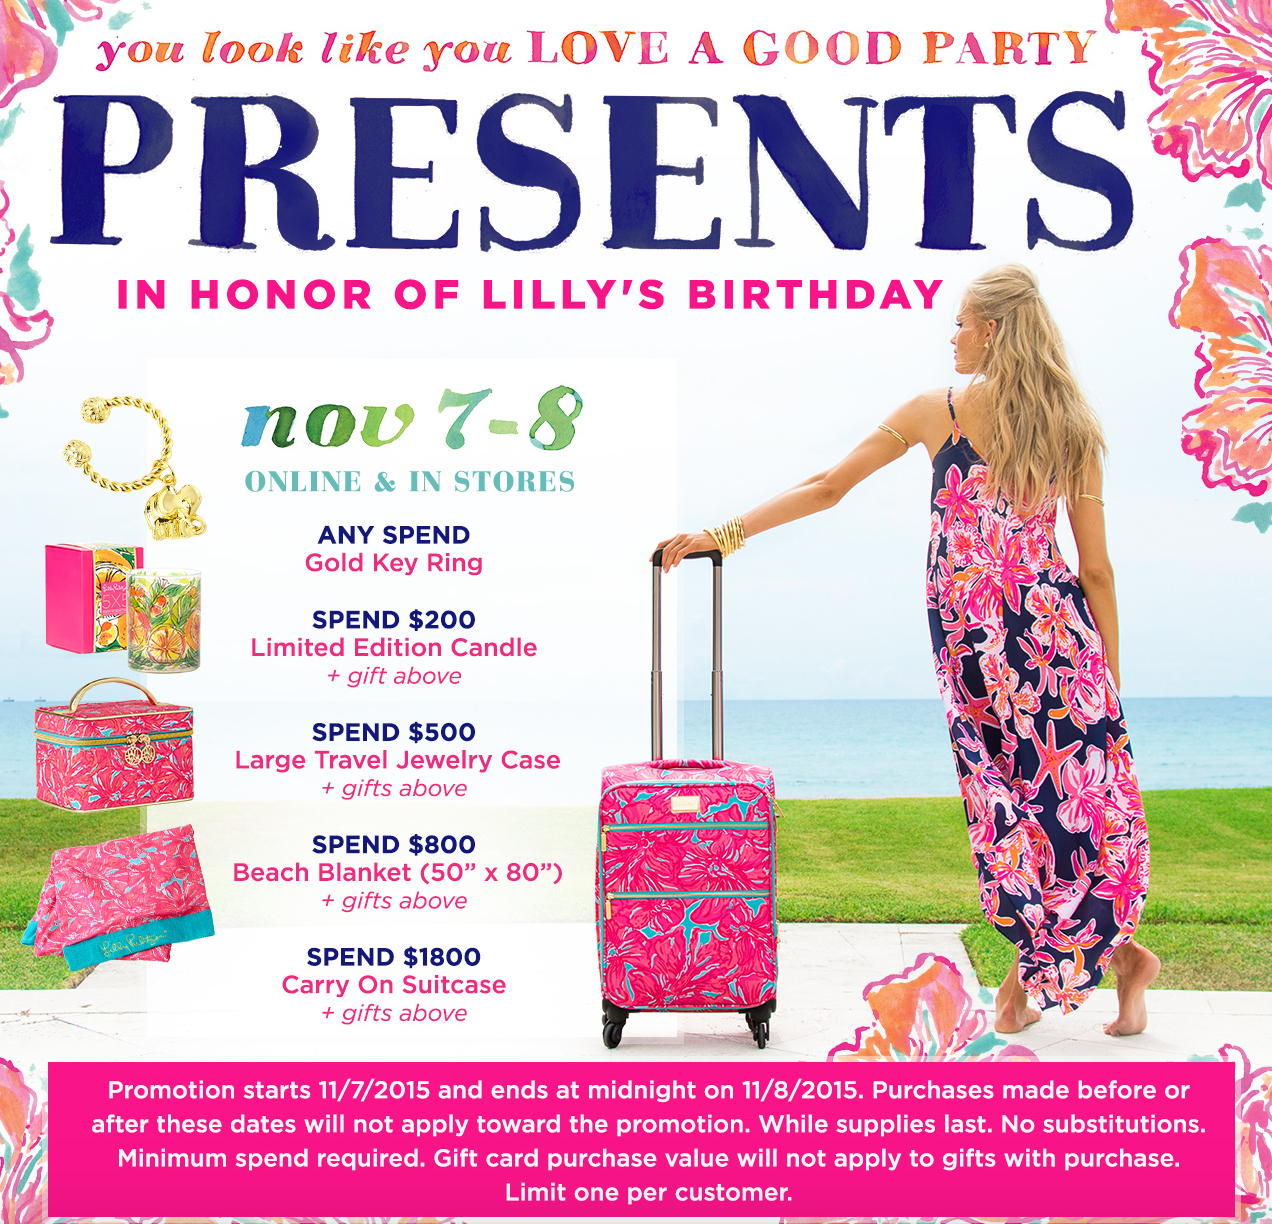 Lilly Pulitzer, Lilly Pulitzer's Birthday, Lilly Pulitzer Free Gifts, Lilly Pulitzer New Arrivals